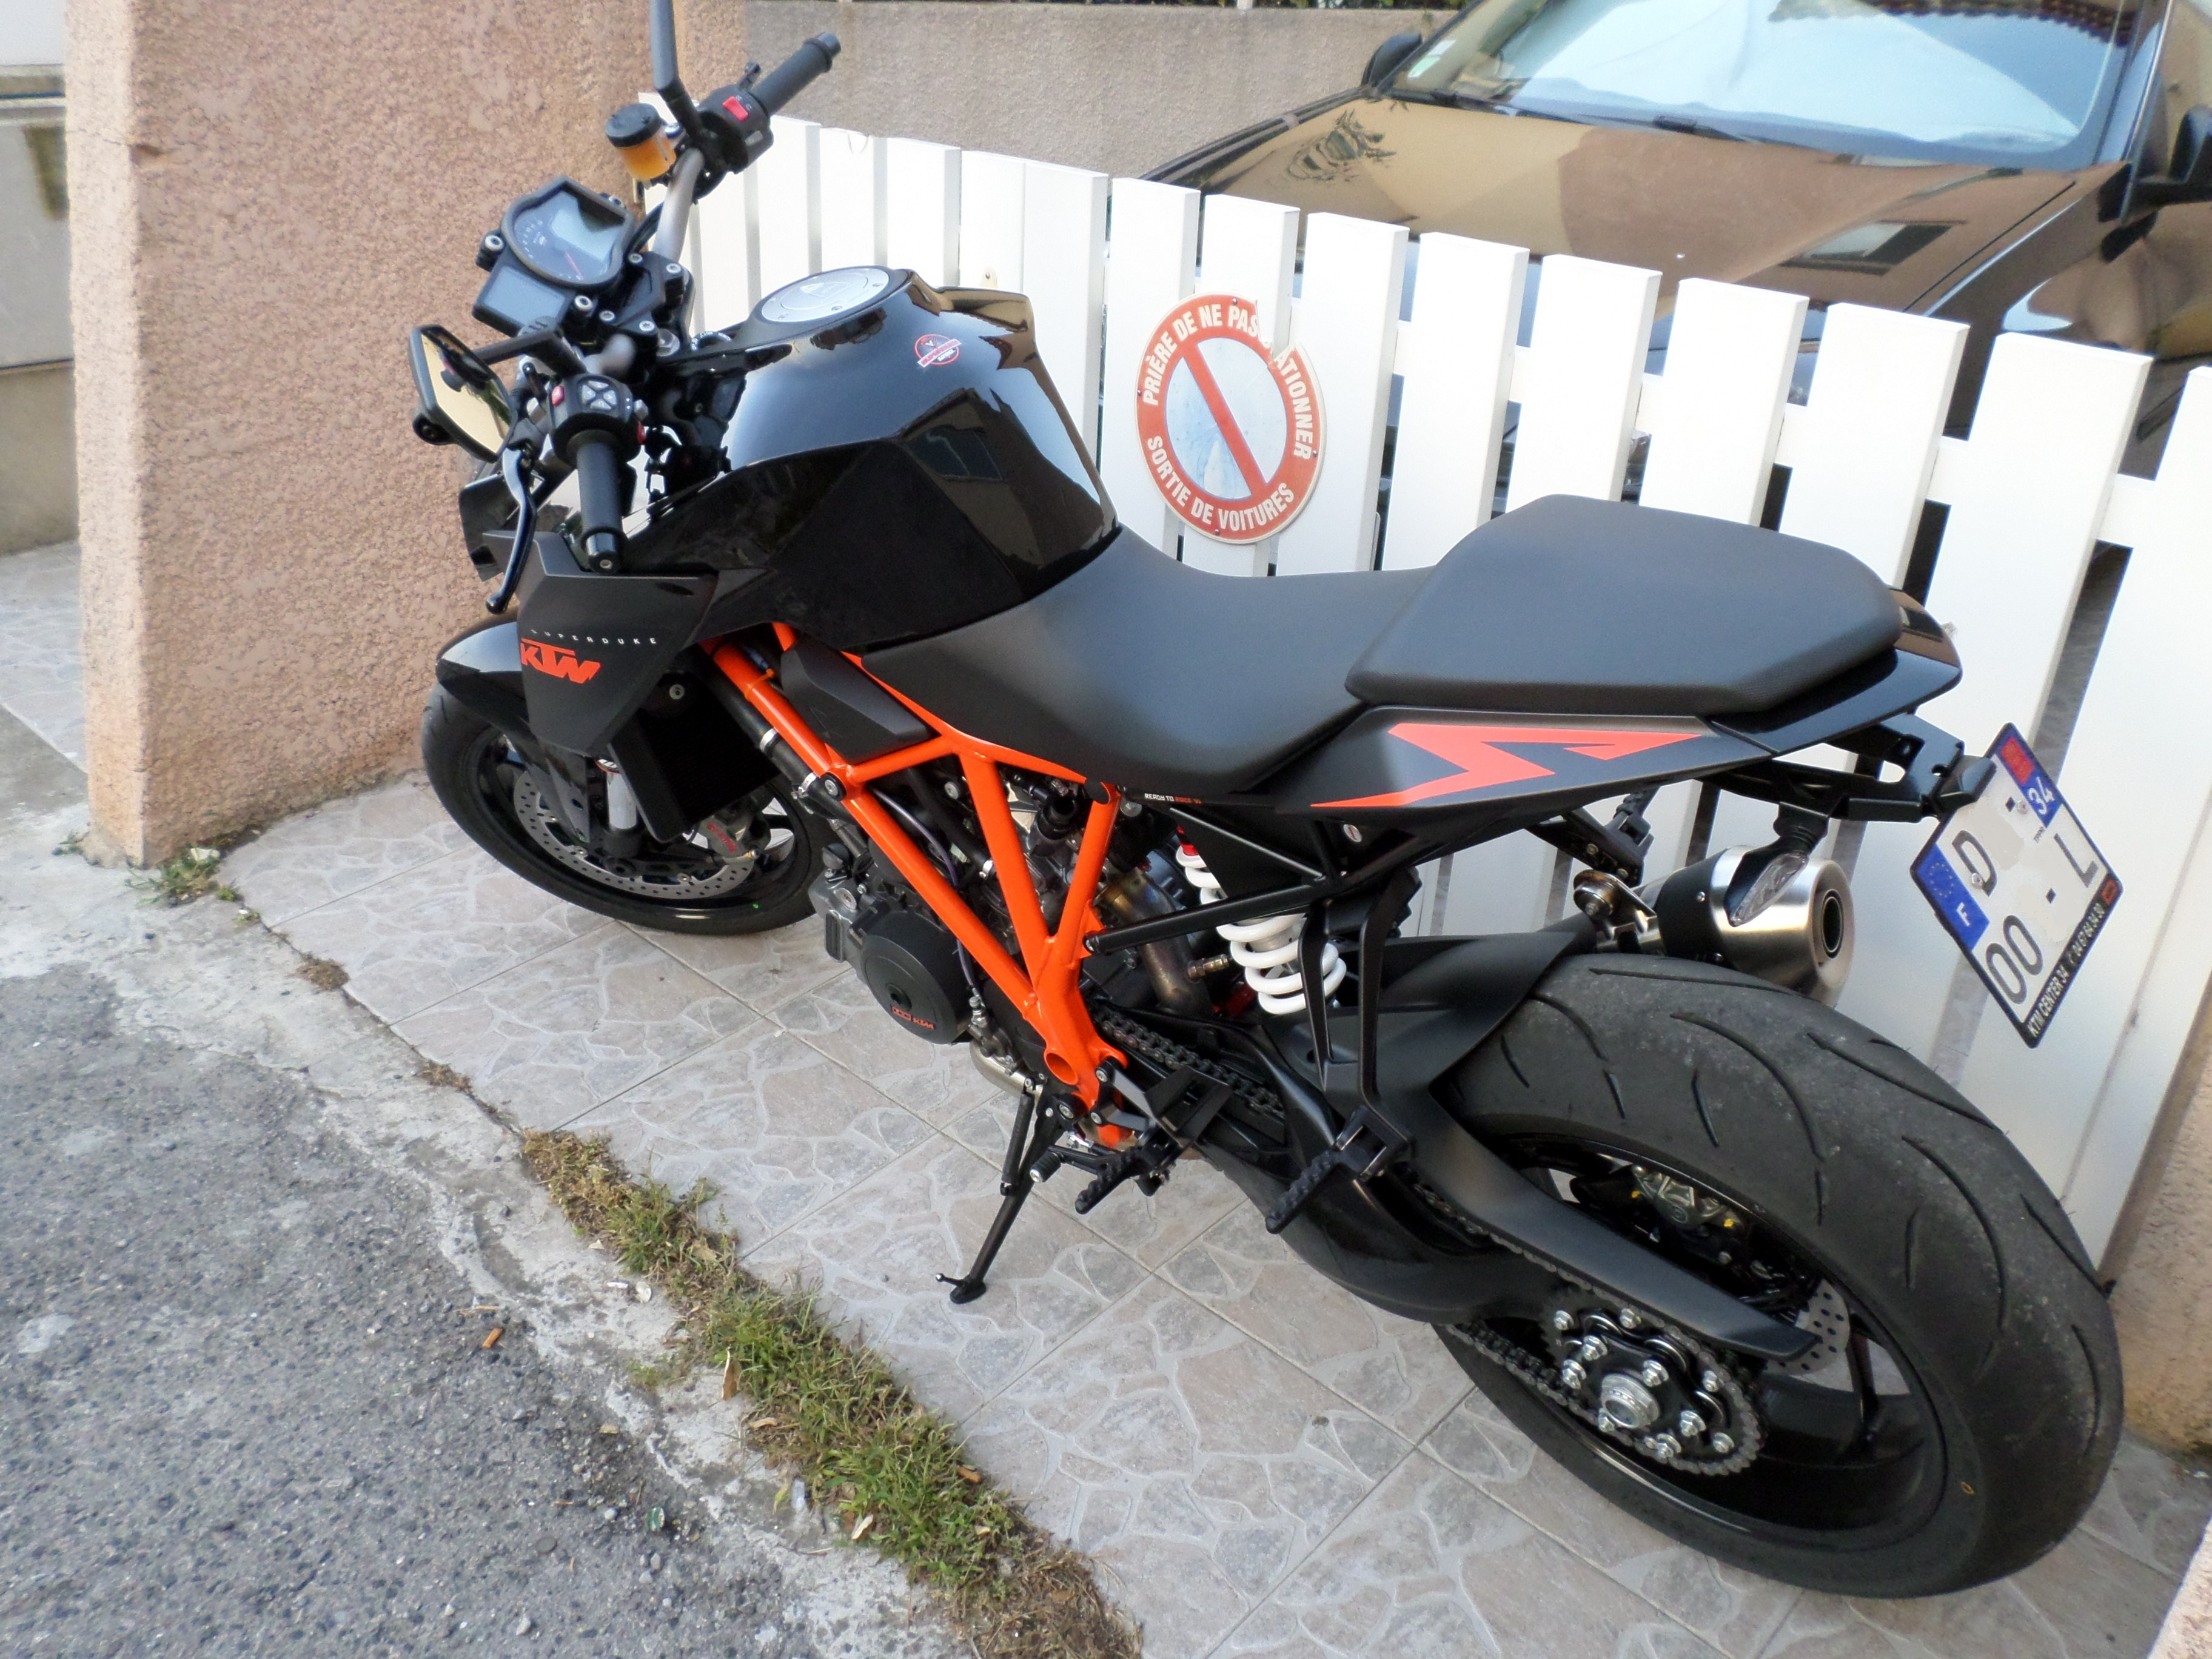 Ktm Wikipedia >> File:KTM Superduke 1290 02.JPG - Wikimedia Commons